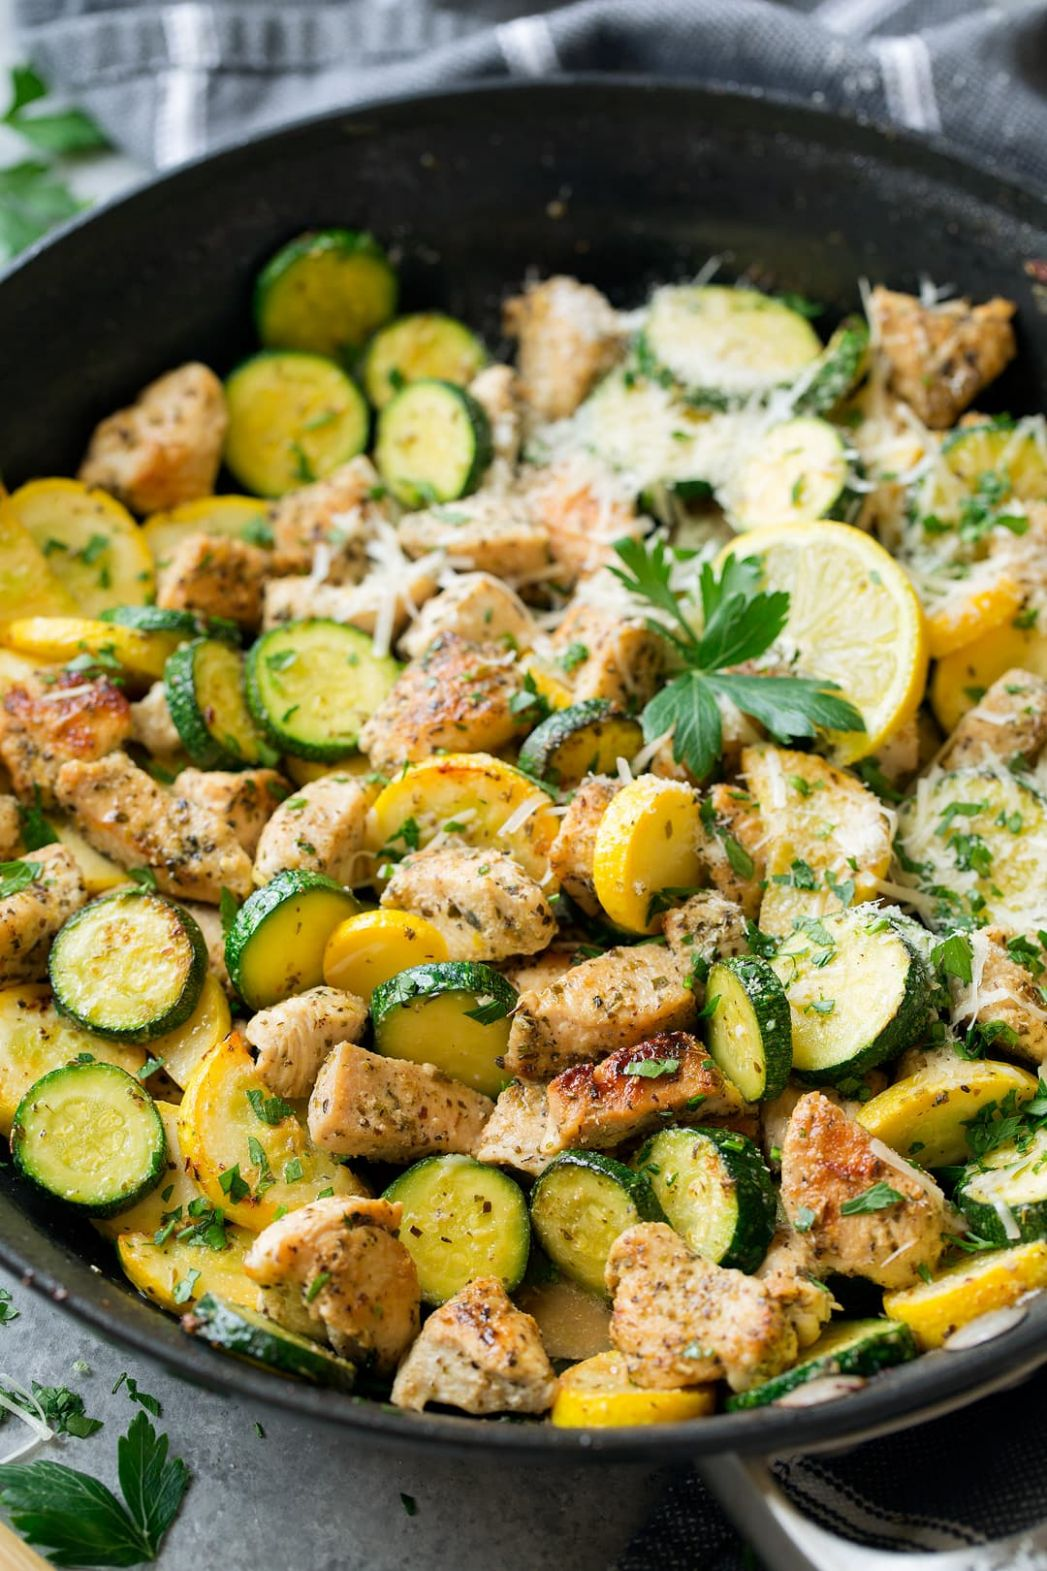 Skillet Lemon Parmesan Chicken with Zucchini - Cooking Classy - Dinner Recipes With Zucchini And Chicken